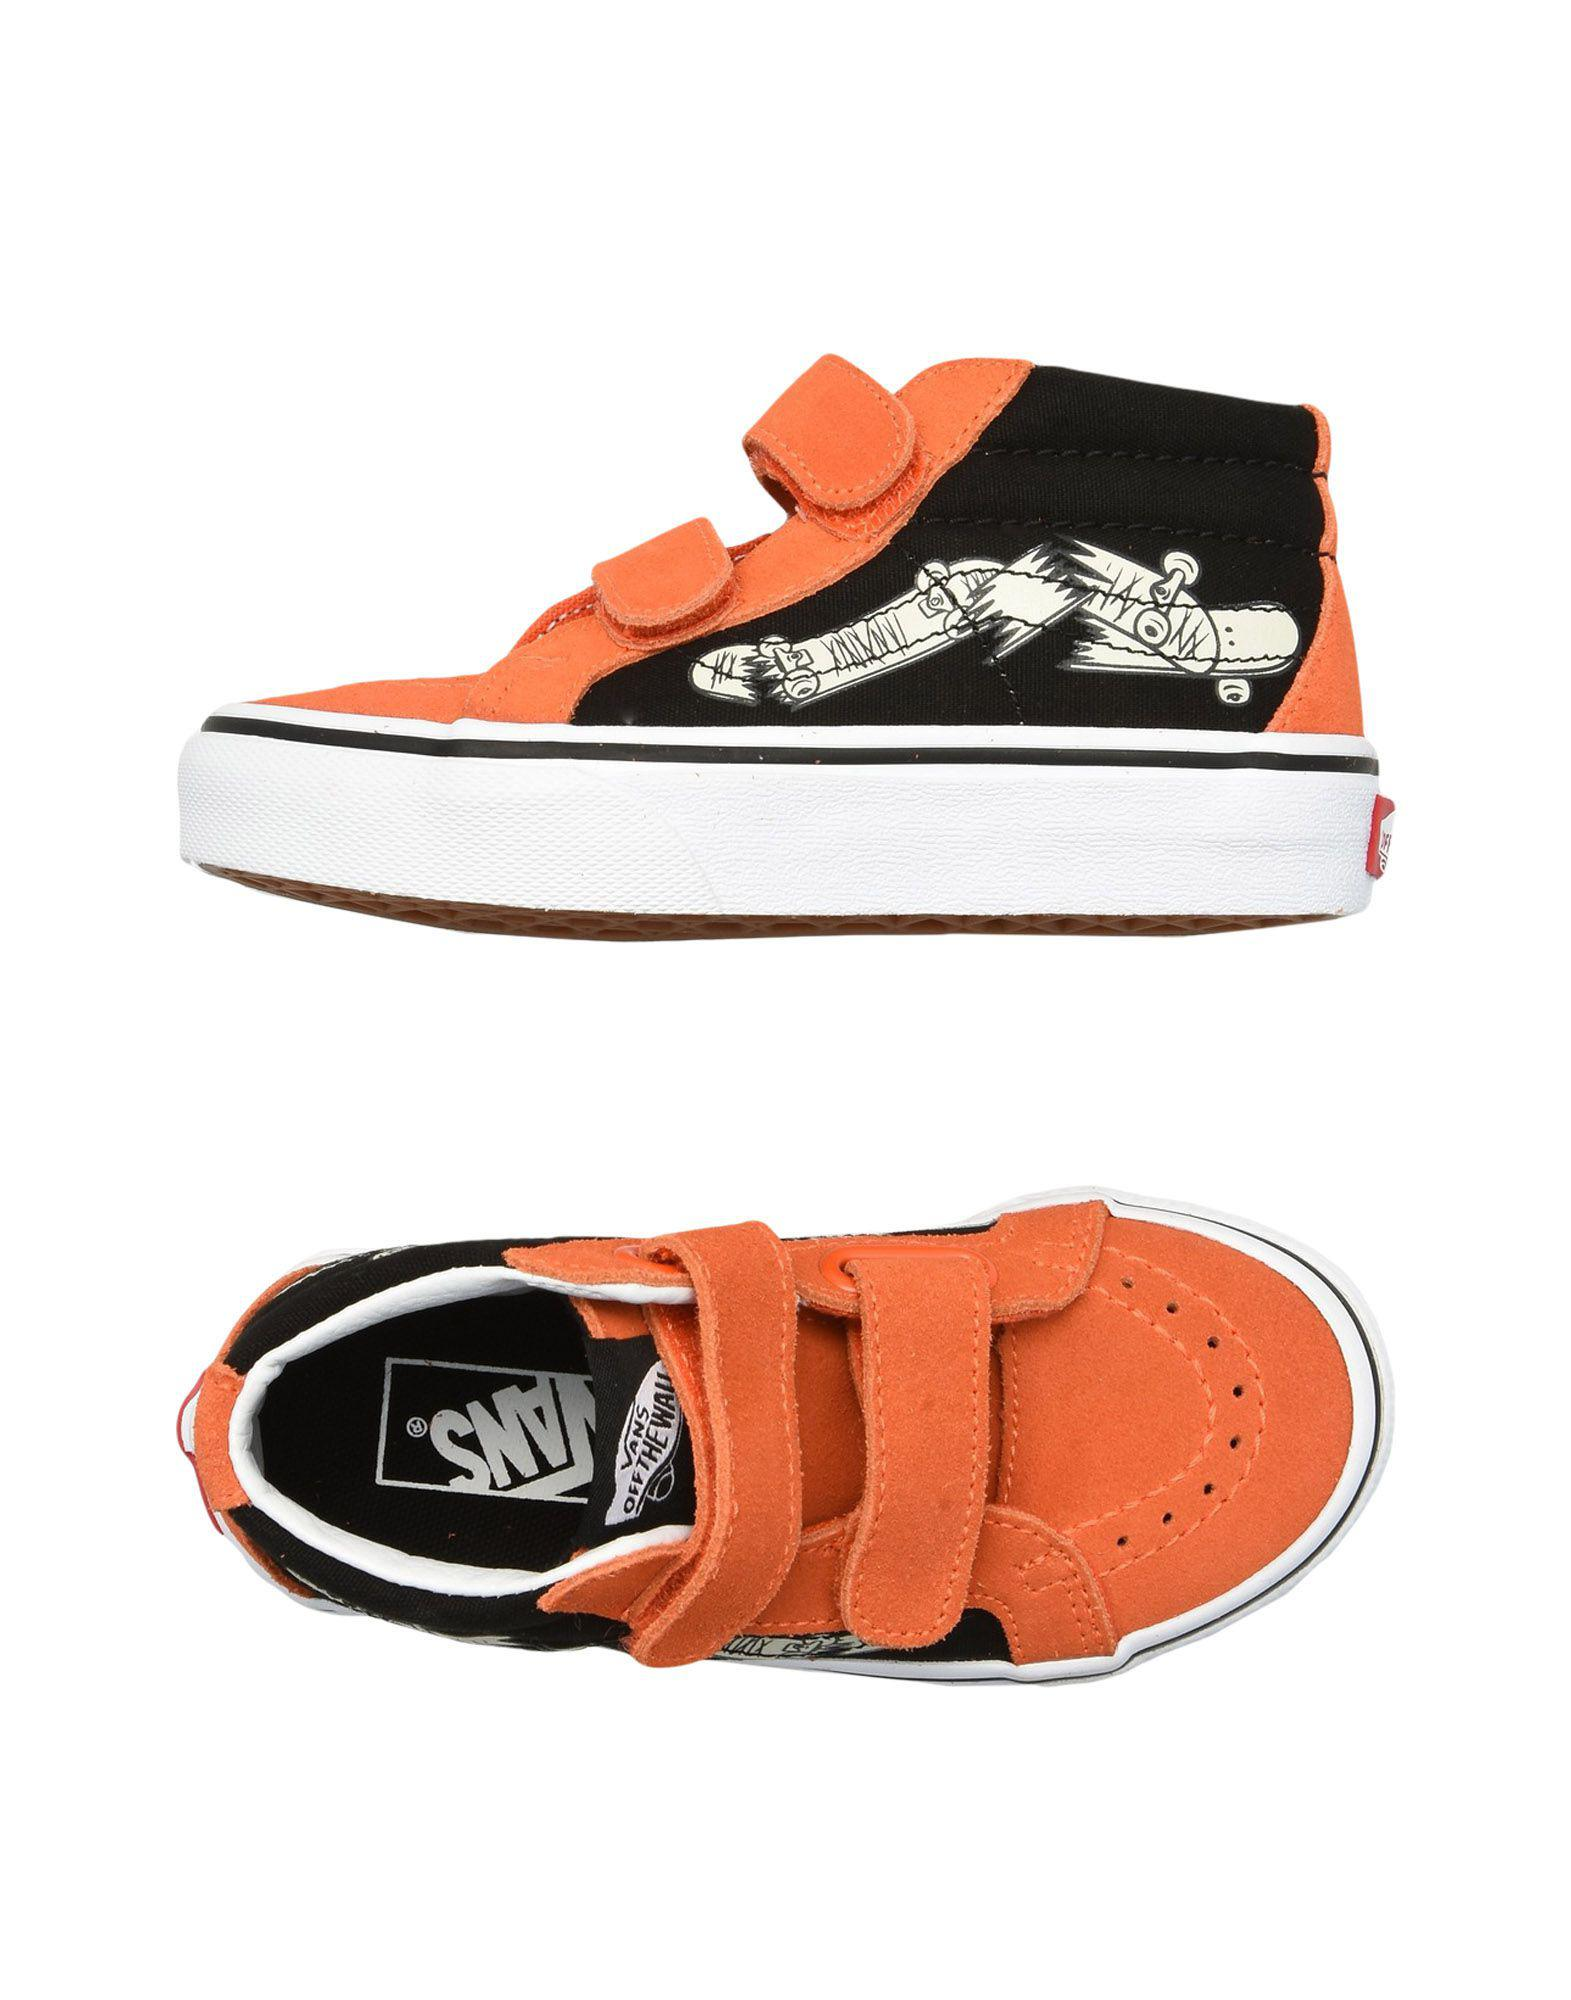 c89e8be92c2dee Vans High-tops   Sneakers in Orange for Men - Lyst